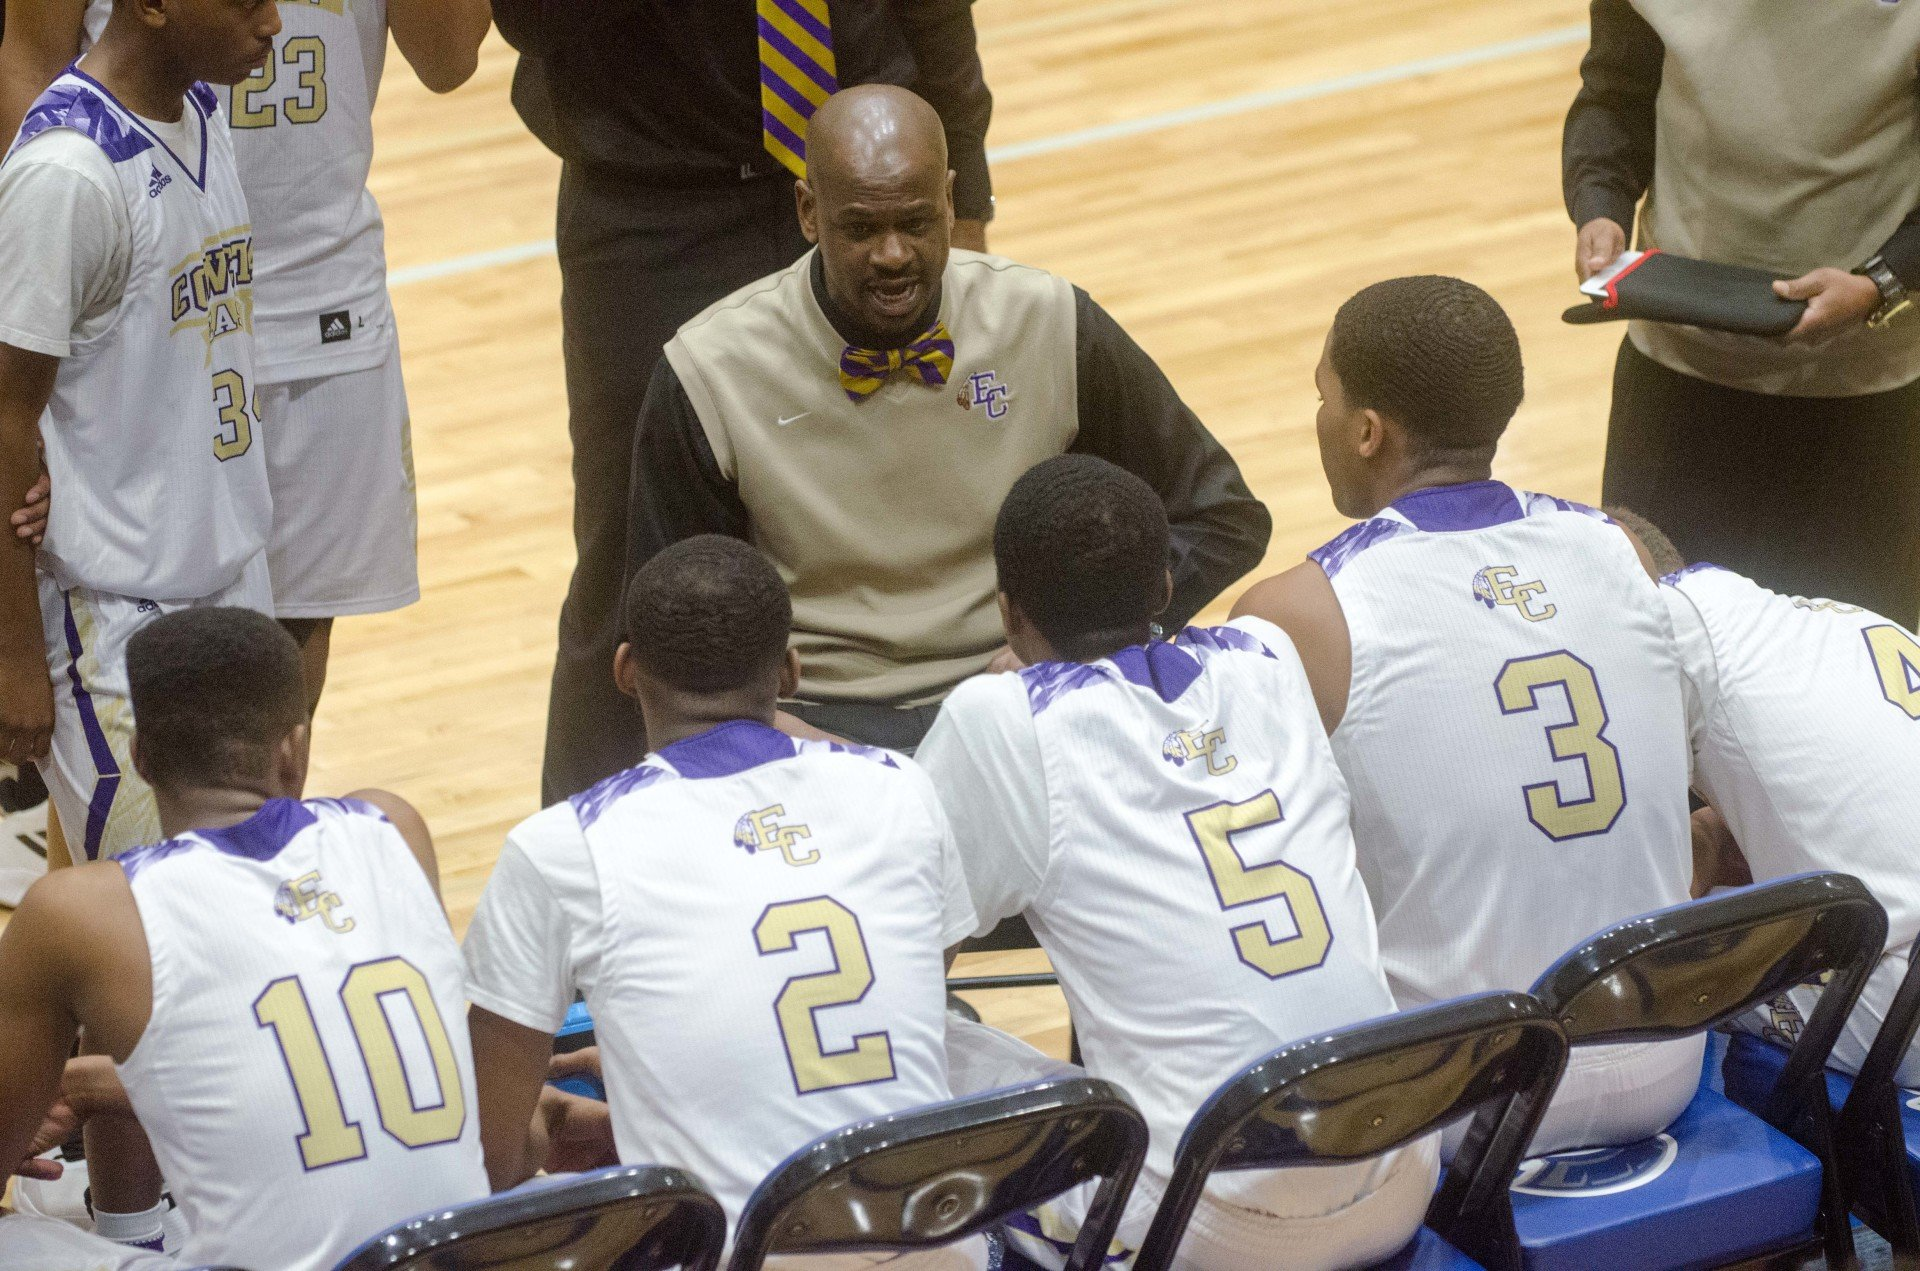 East Coweta's boys face undefeated No. 1 state-ranked McEachern in the first round.